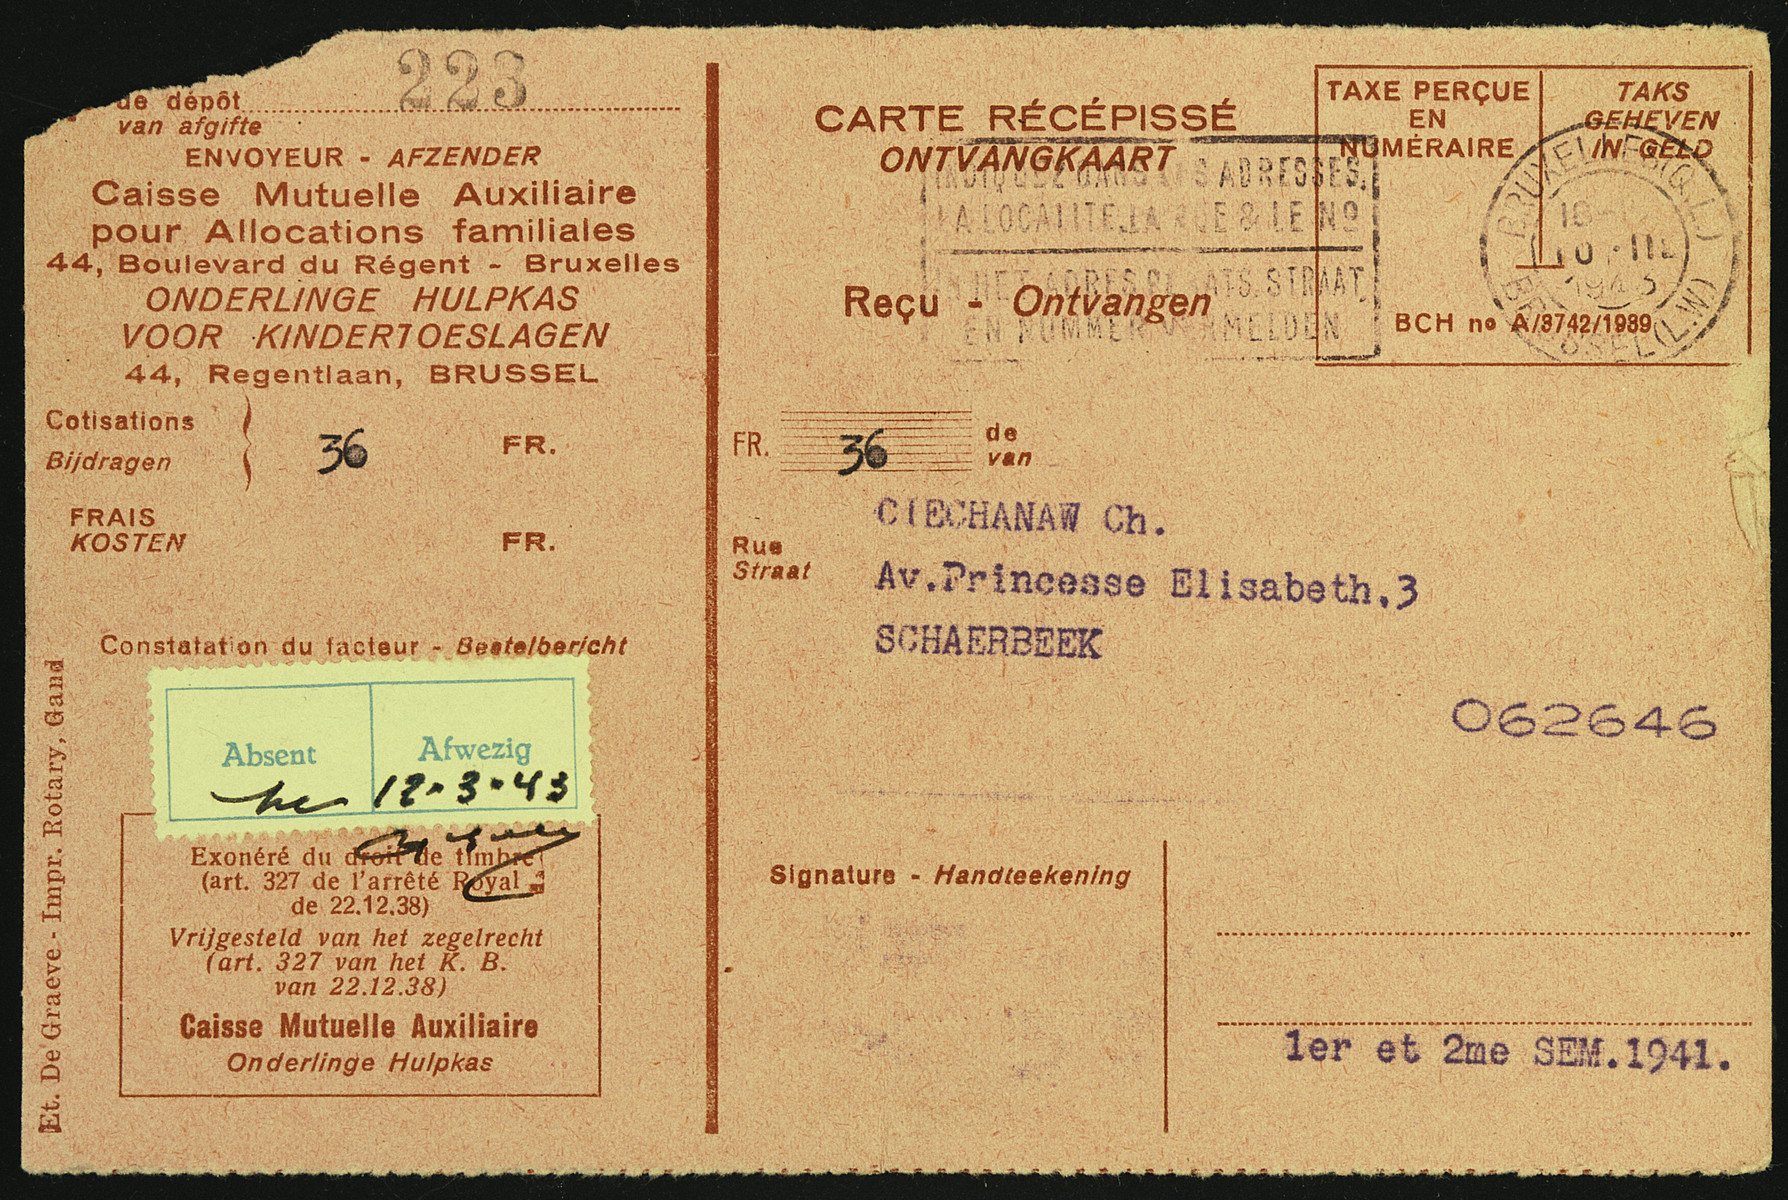 Receipt for 30 francs sent to Chaim Cheichanow from the Auxilliary Mutual Bank for Family Allocation.  These papers were kept at the transit camp, Malines, after her deportation to Auschwitz.  Malines held on to the documentation for sixty-two years before sending it to Flora Singer, the surviving next-of-kin, in 2006.